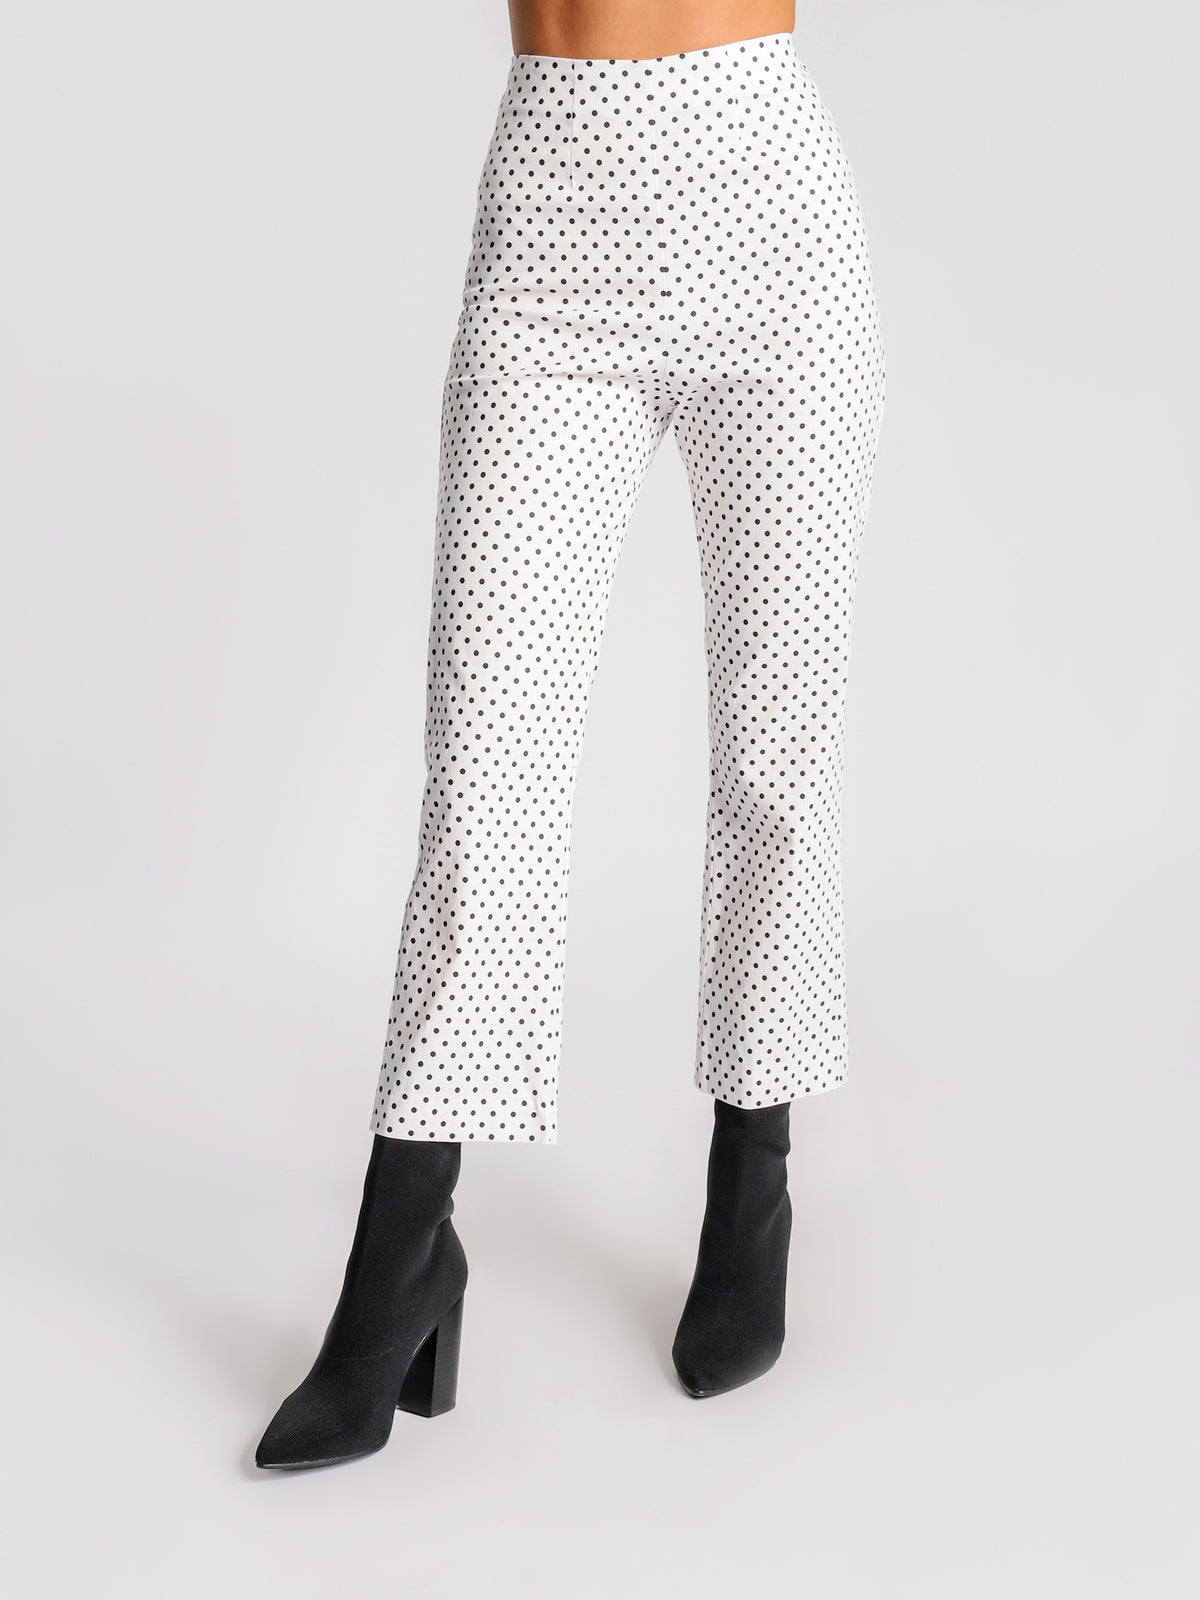 Drew Pants in White & Black Polka Dot Print